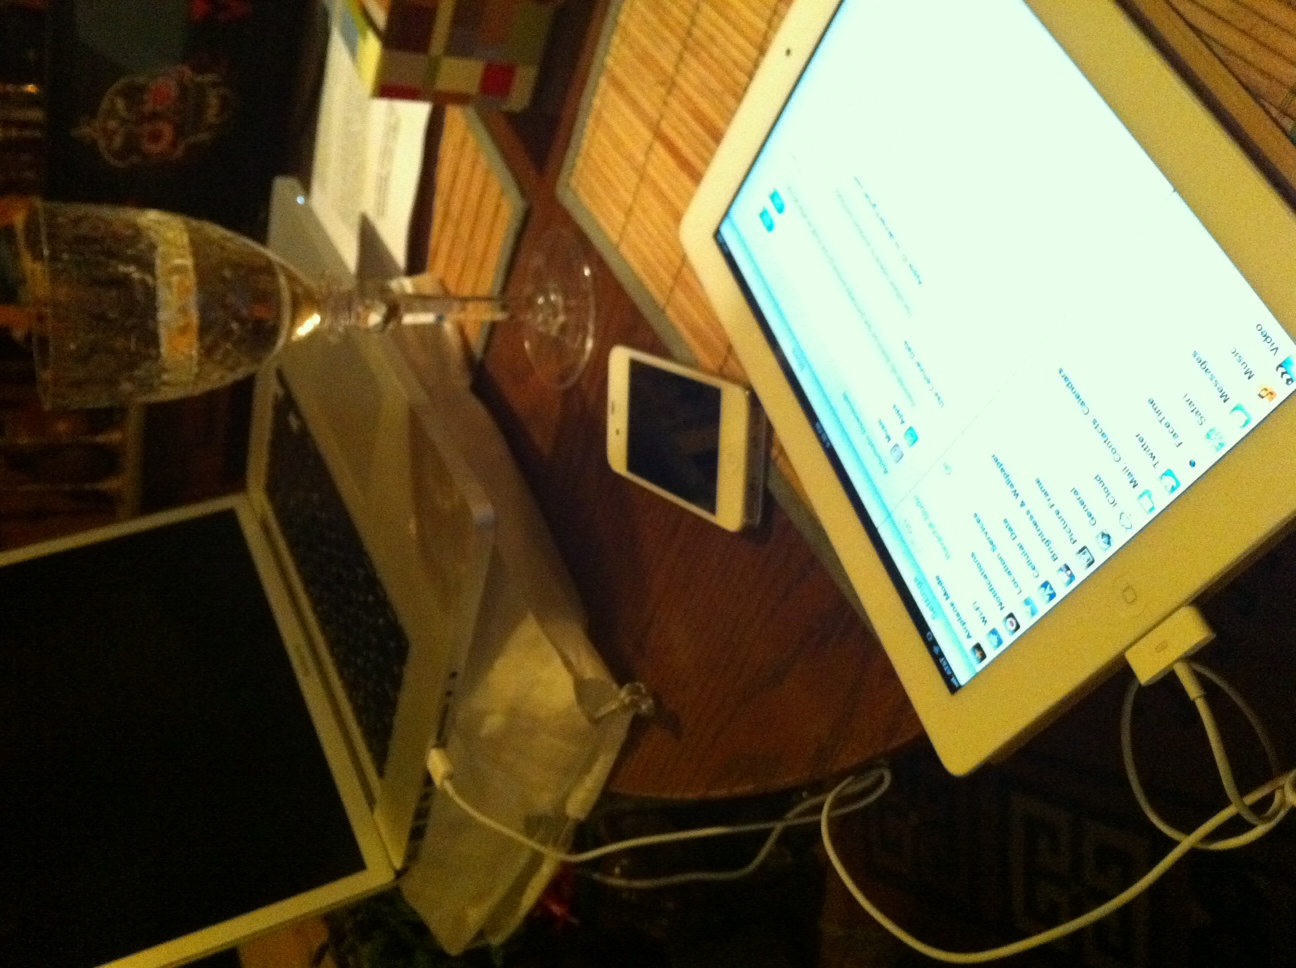 I'm a good little Apple servant; gearing up for #ixd12 in Dublin, of course I need an iPad!